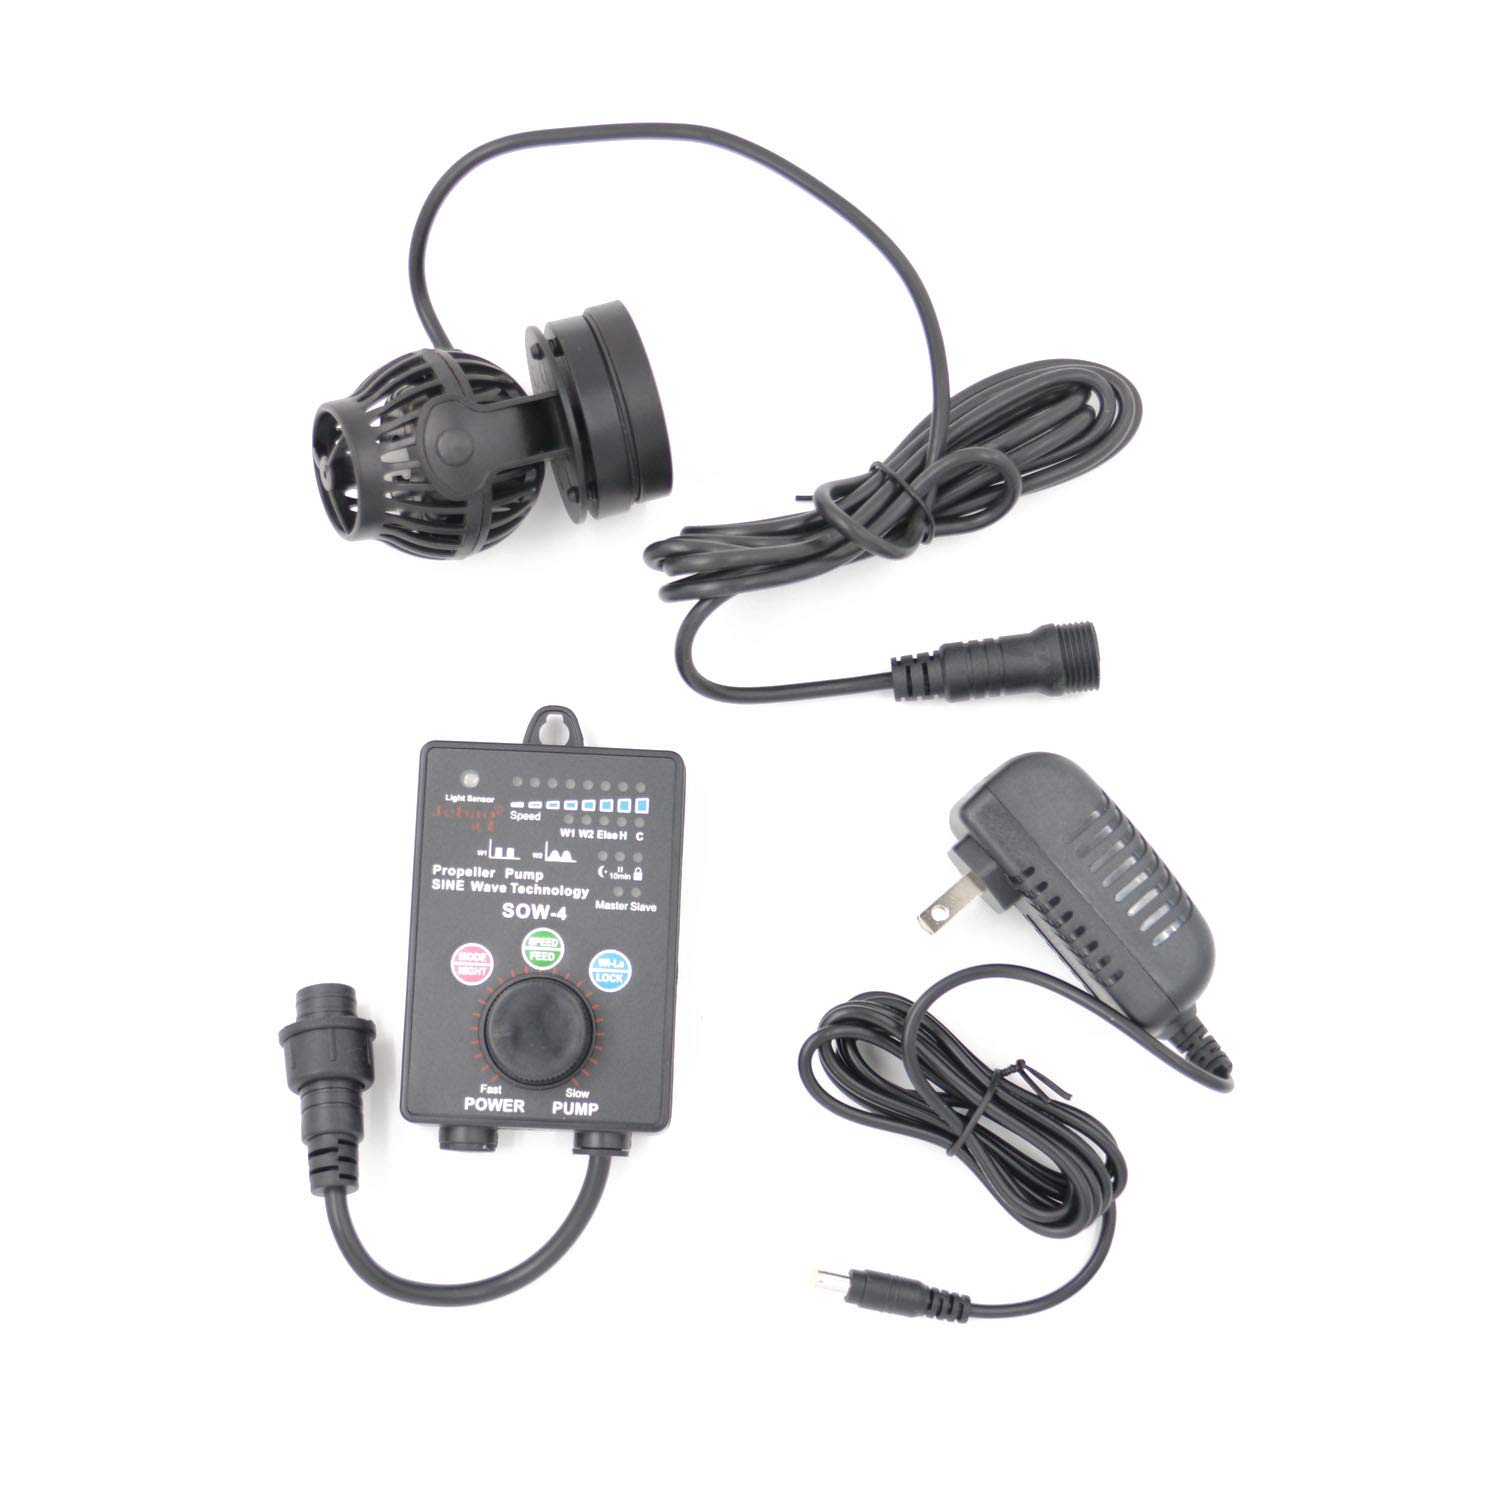 Jebao SOW Wave Maker Flow Pump with Controller for Marine Reef Aquarium (SOW-4) by Jebao